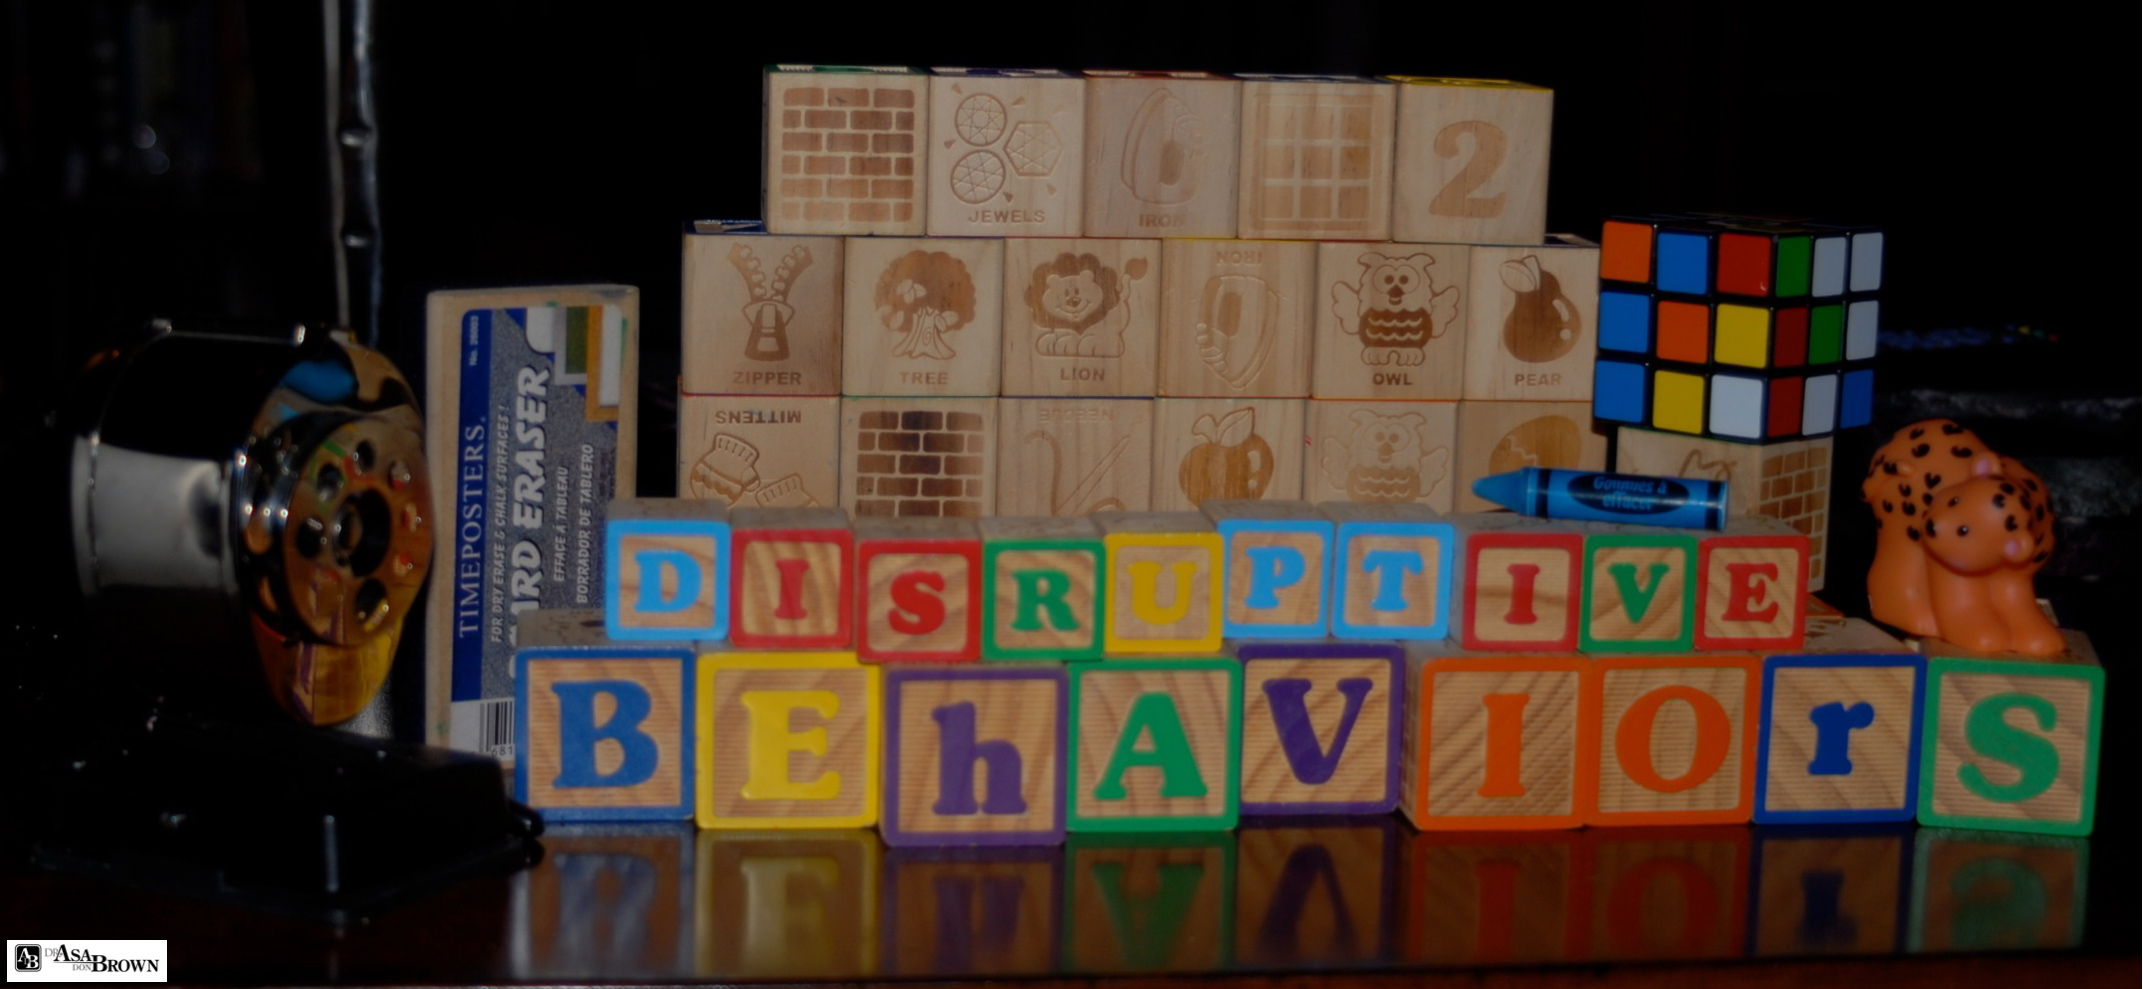 an overview of the managing classroom behavior Appropriate techniques for managing students  managing student behavior  explore the why's and how's of teaching appropriate behavior in the classroom,.